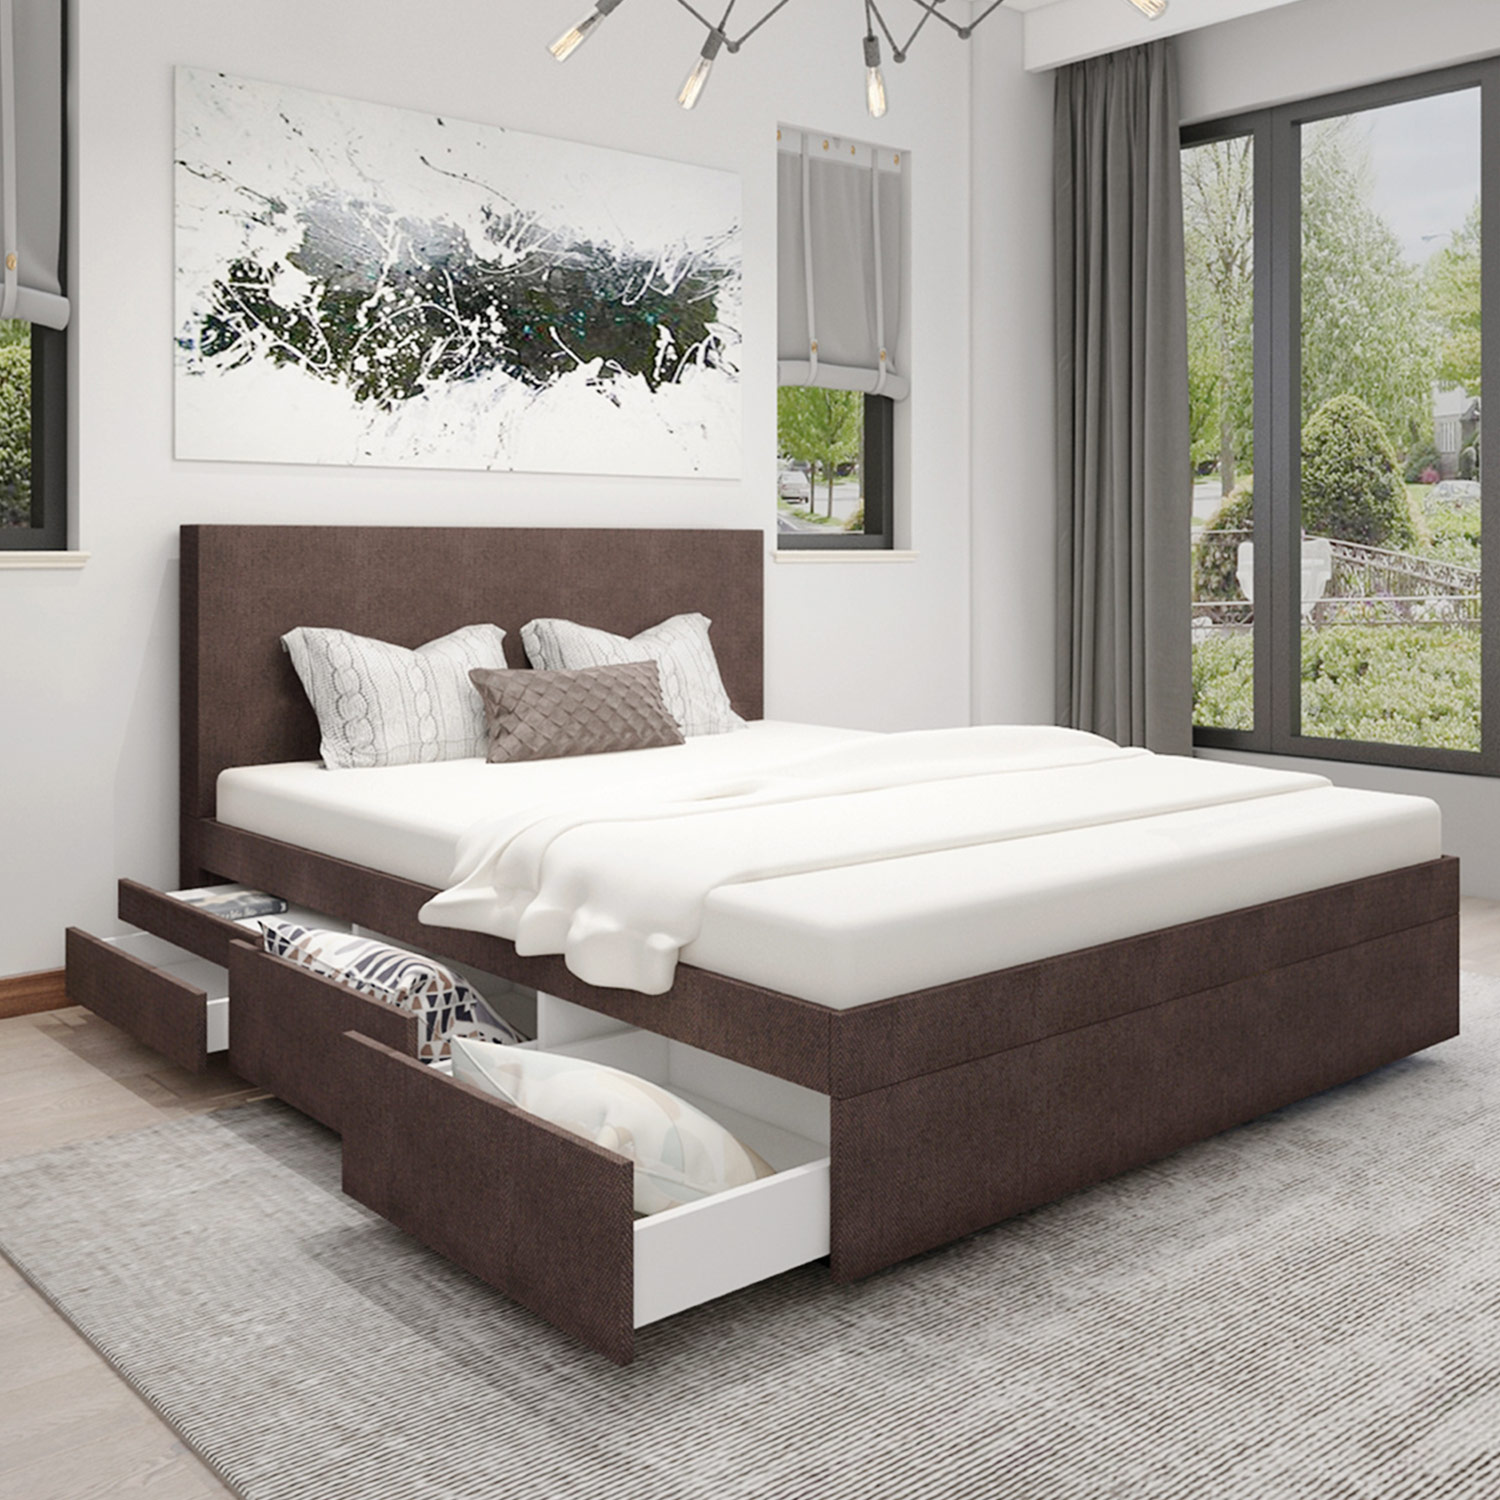 bellvita boxspring wasserbett mit schubladen bellvita wasserbetten onlineshop. Black Bedroom Furniture Sets. Home Design Ideas